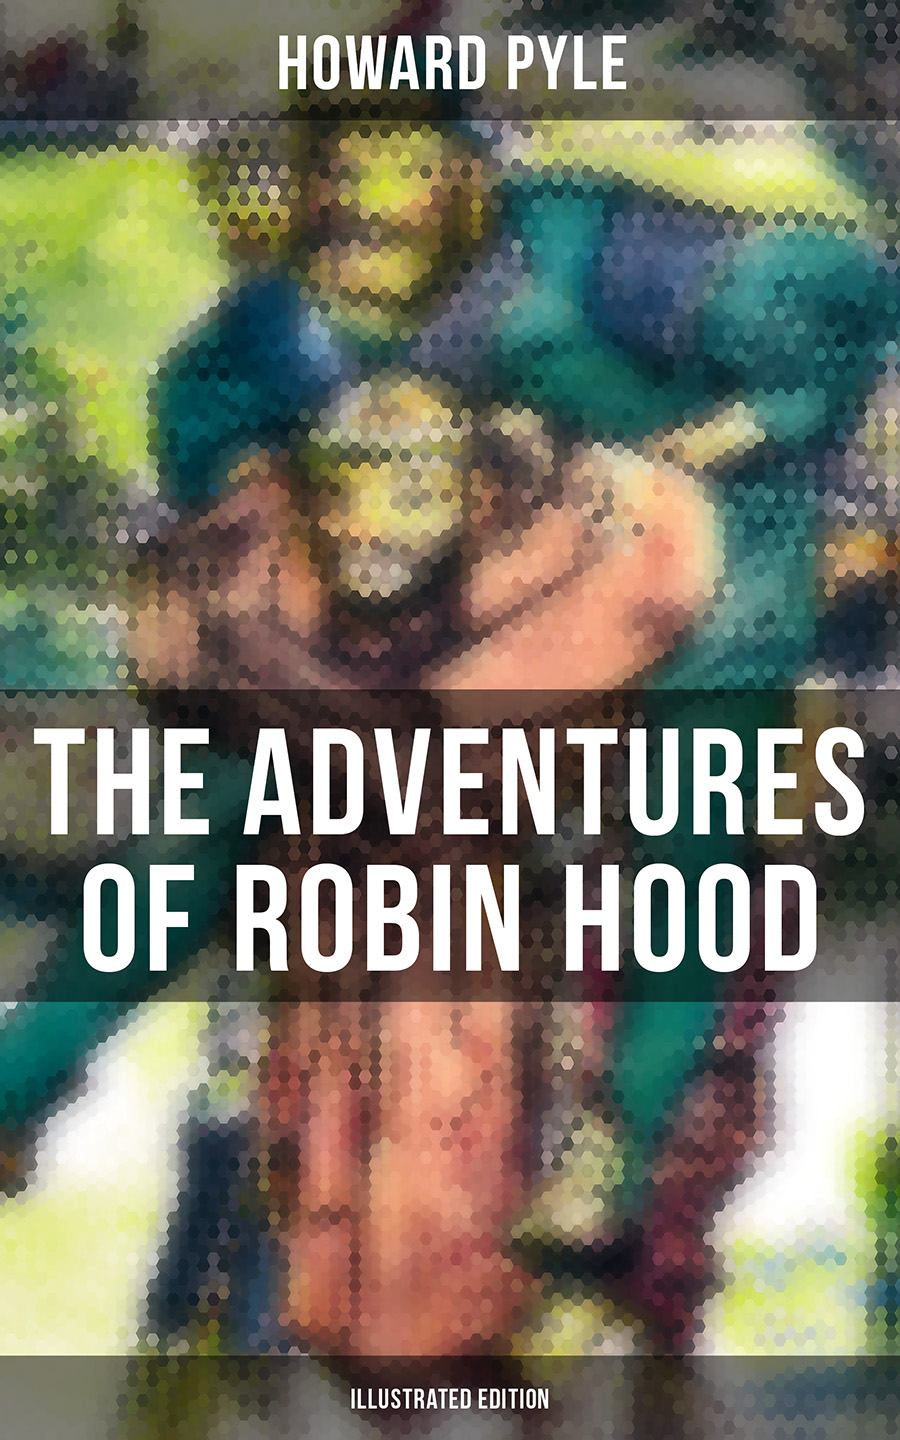 Фото - Howard Pyle The Adventures of Robin Hood (Illustrated Edition) howard pyle men of iron